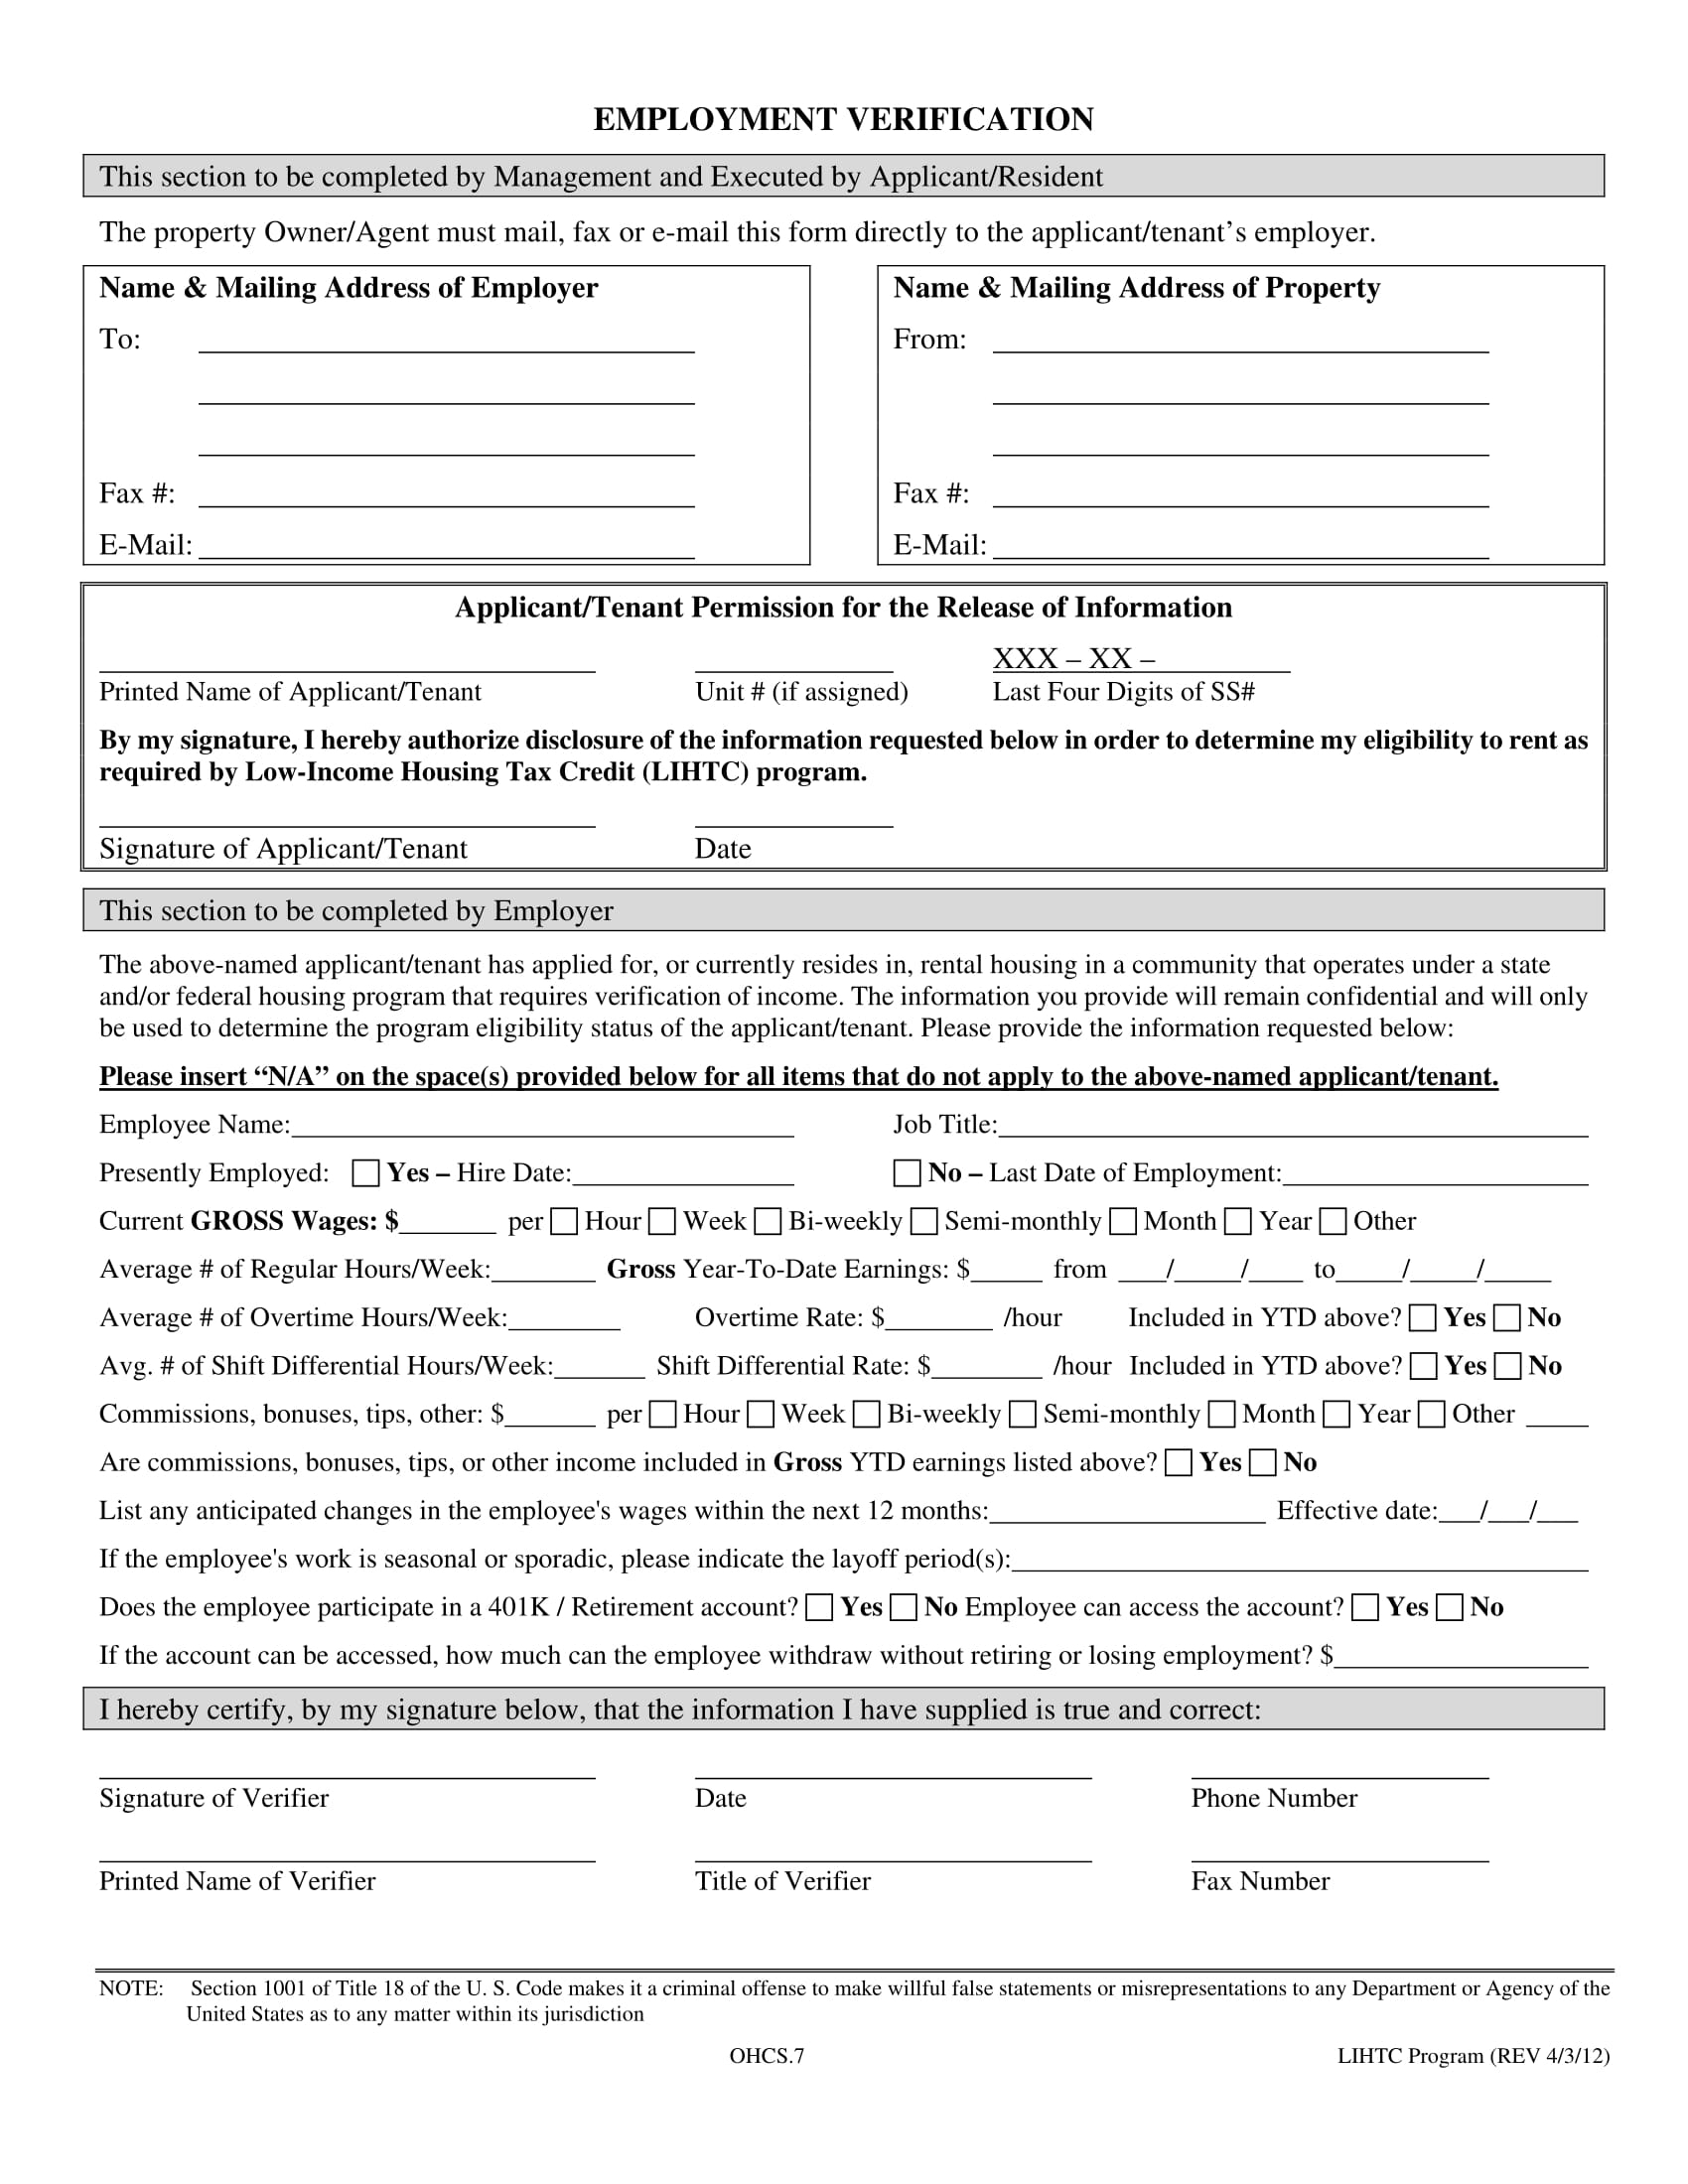 resident tenant employment verification form 1